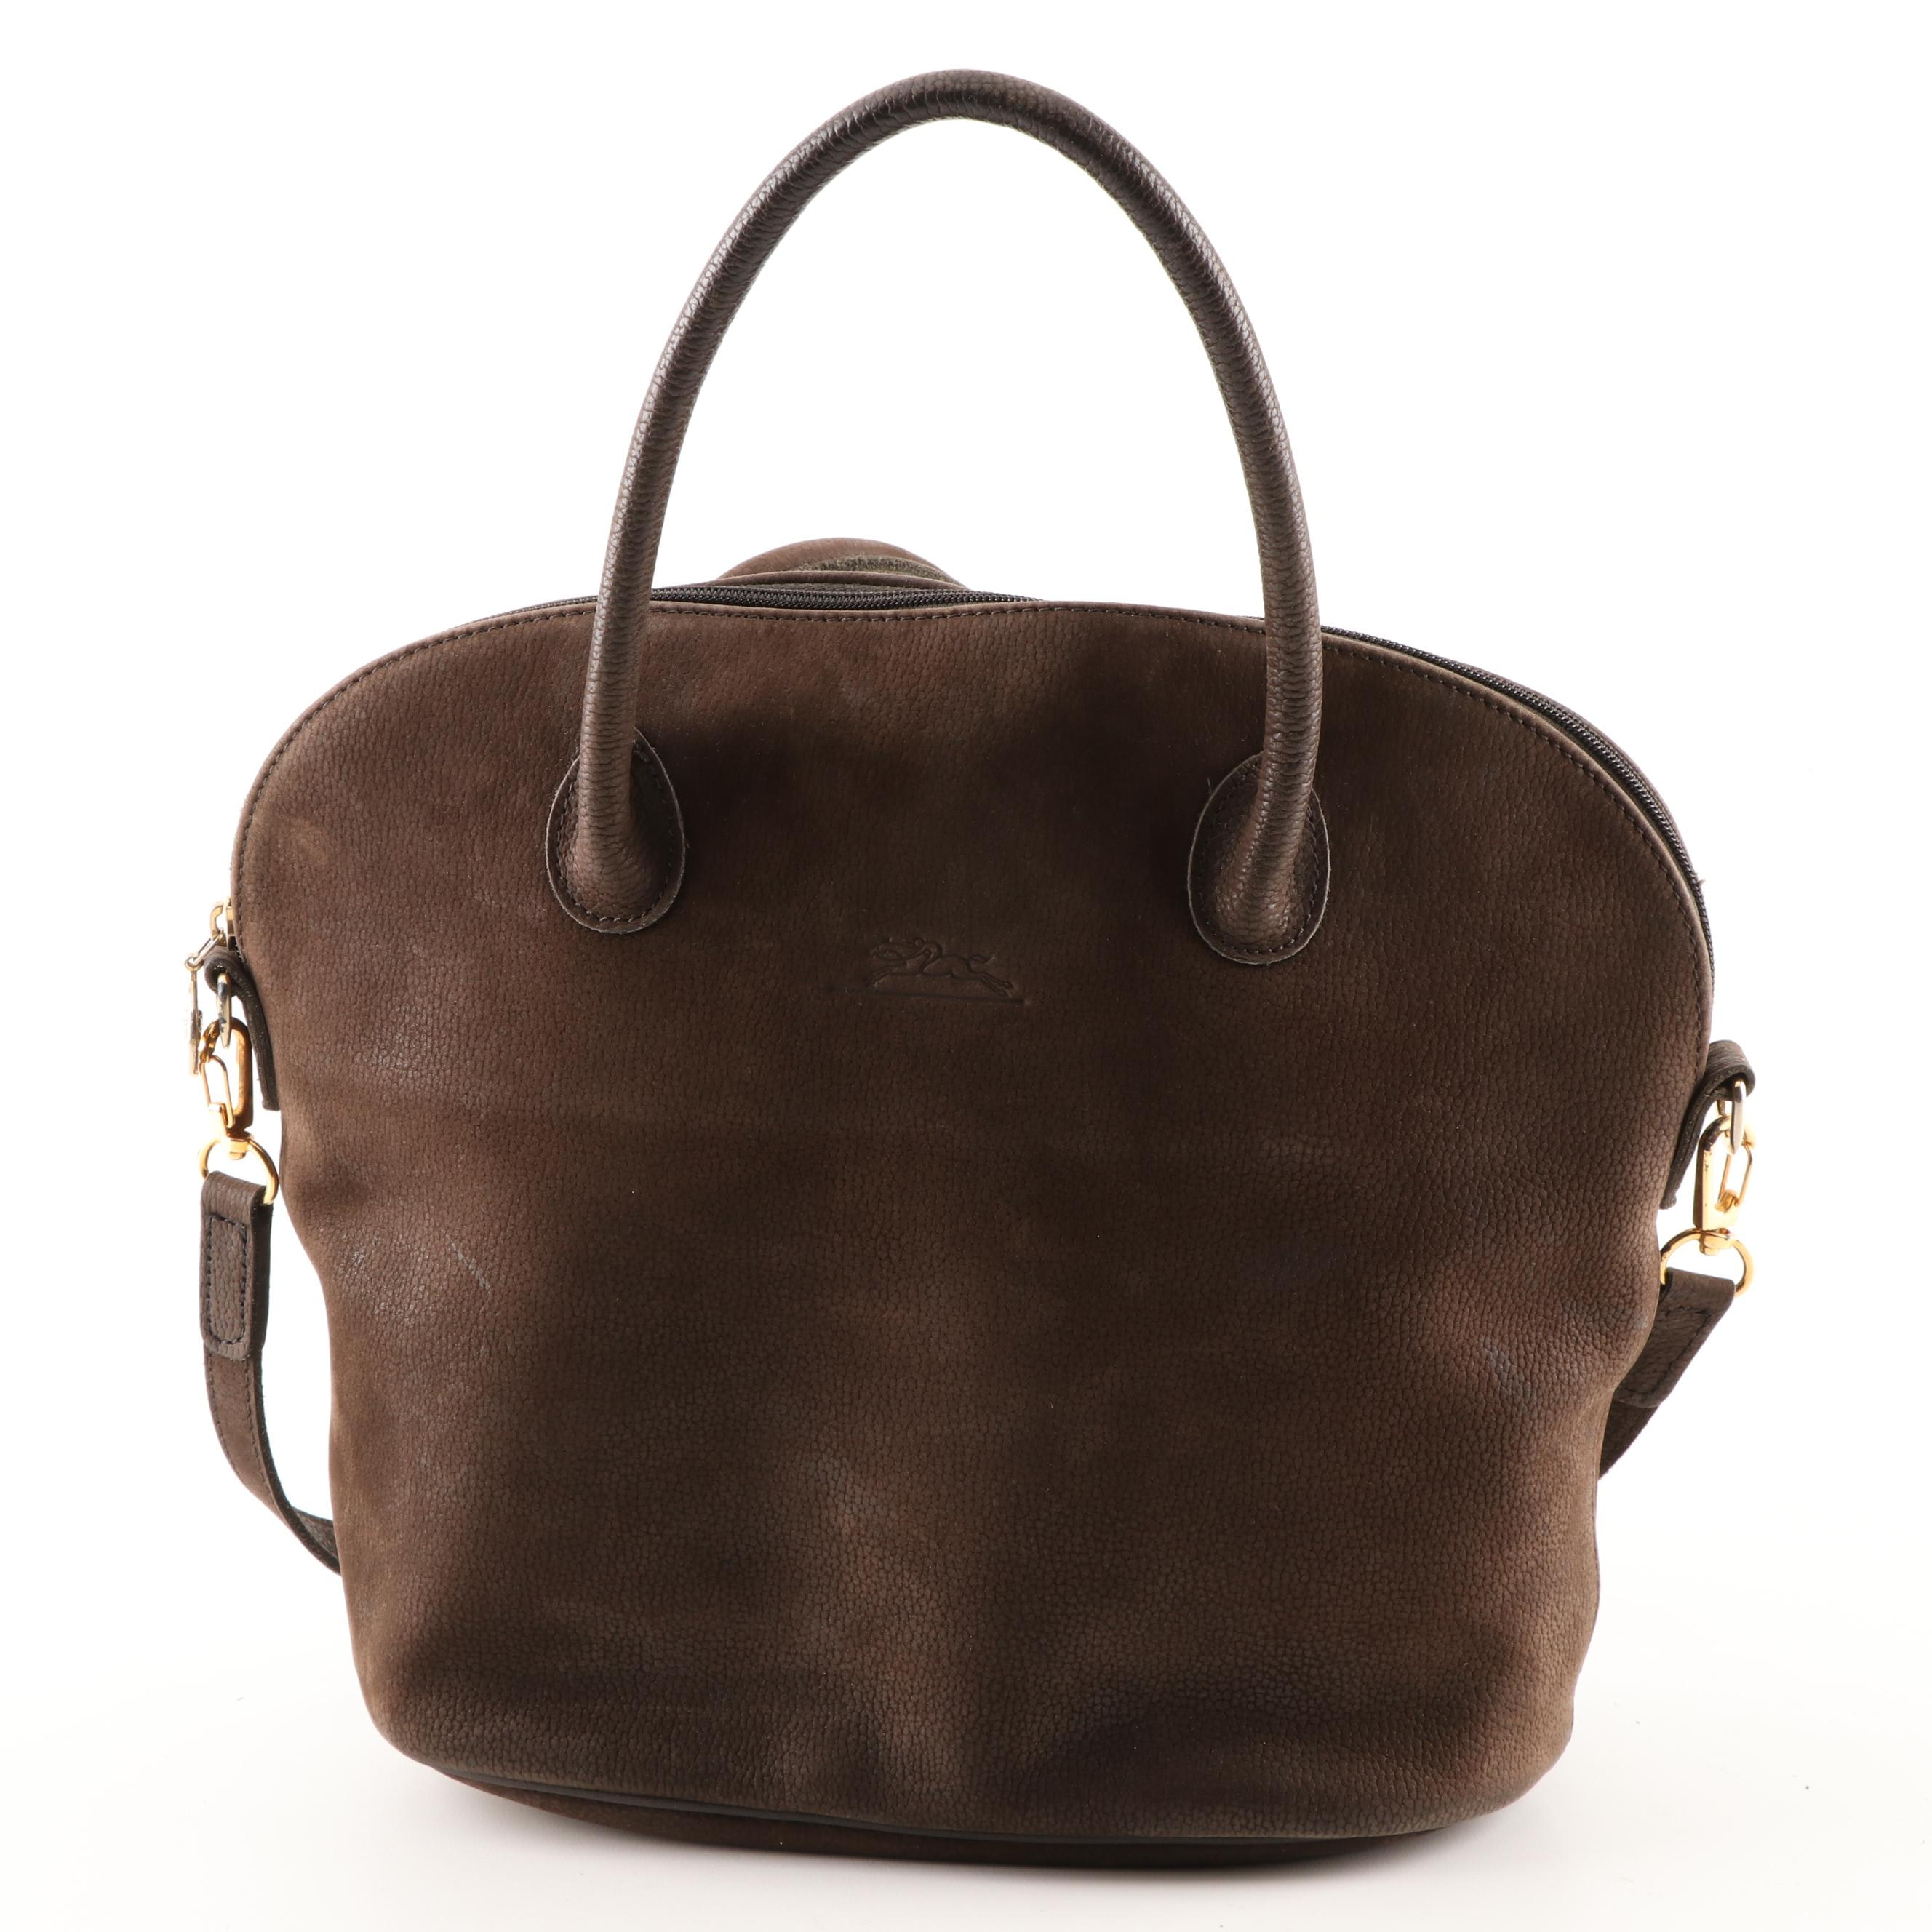 Longchamp Paris Brown Pebbled Suede Tote Bag with Crossbody Strap